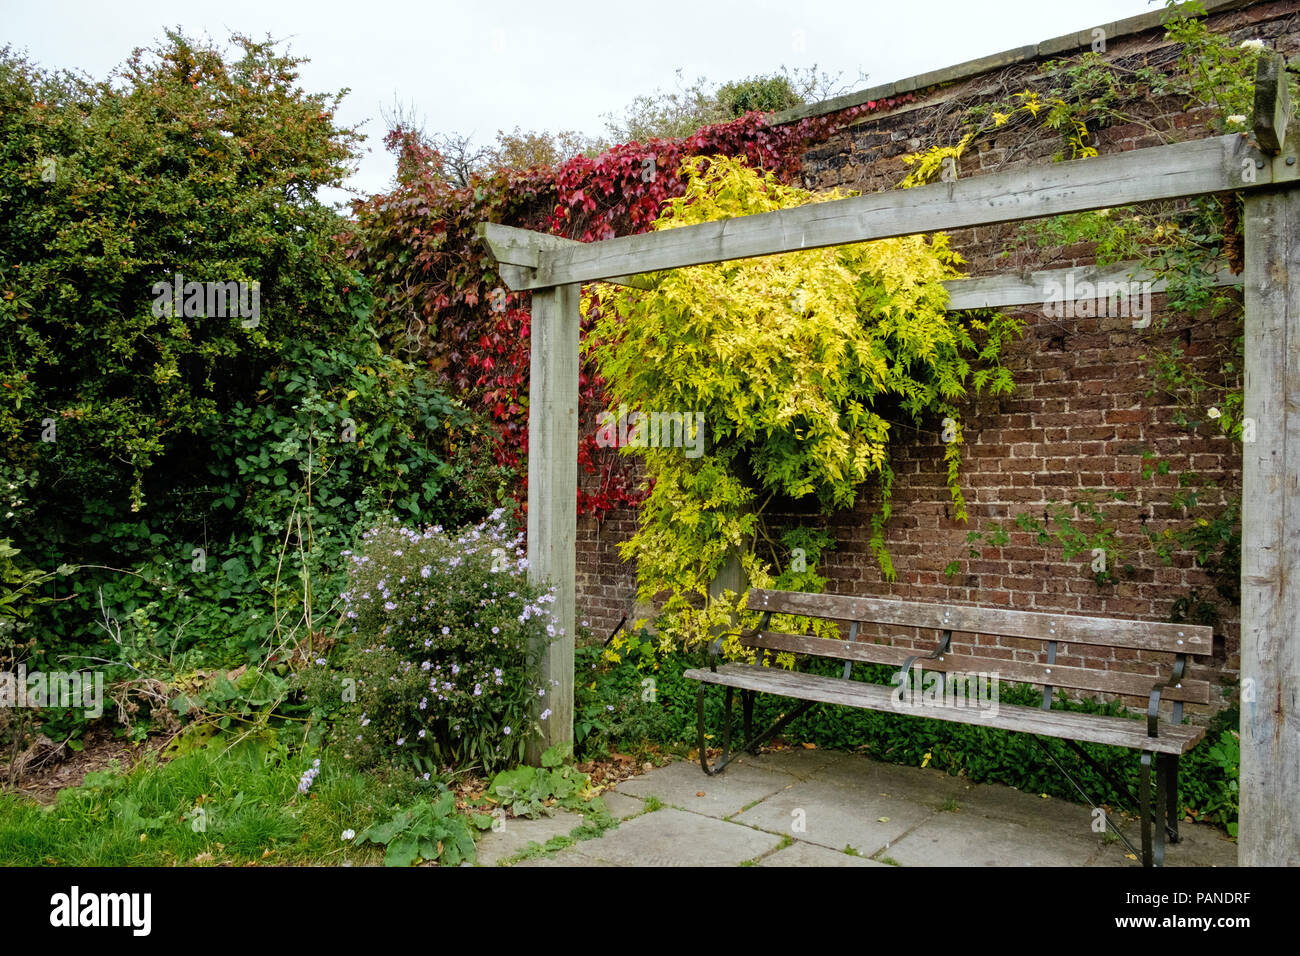 A bench under a pergola at Brockwell Park, Herne Hill, South London, England in autumn, with brick wall behind, red vines and yellow leaves. - Stock Image